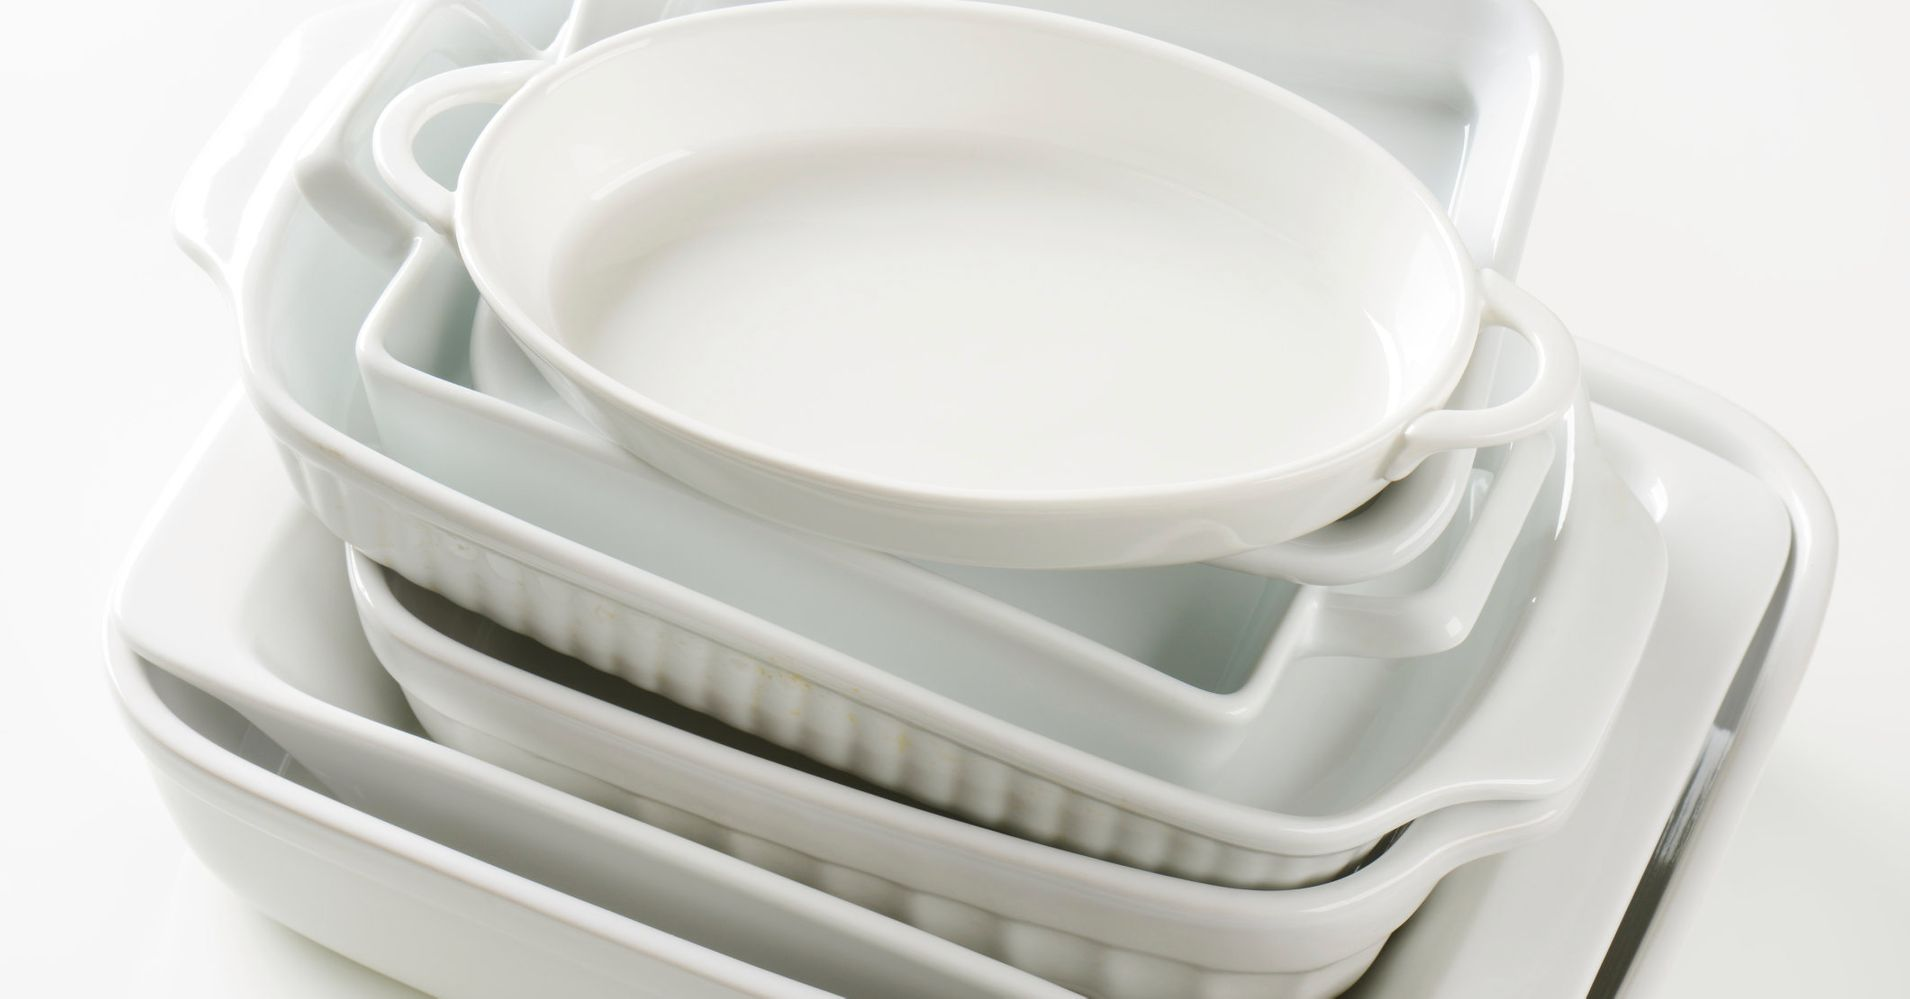 A Smarter Way To Organize All Those Serving Platters | HuffPost